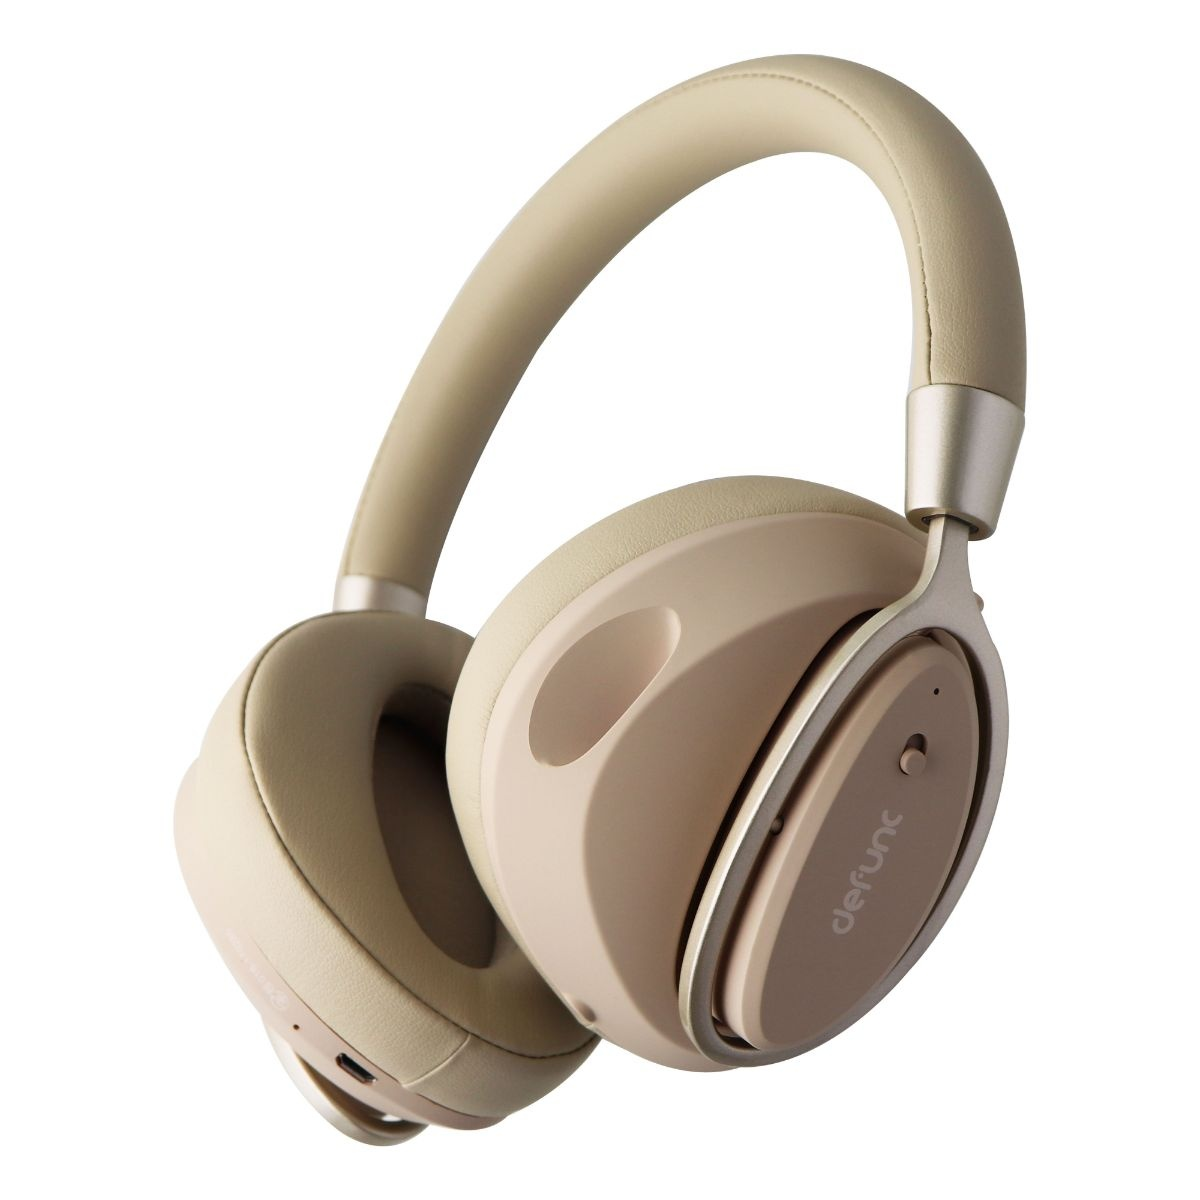 Defunc MUTE Wireless Over-Ear Headphones with Active Noise Cancellation - Gold